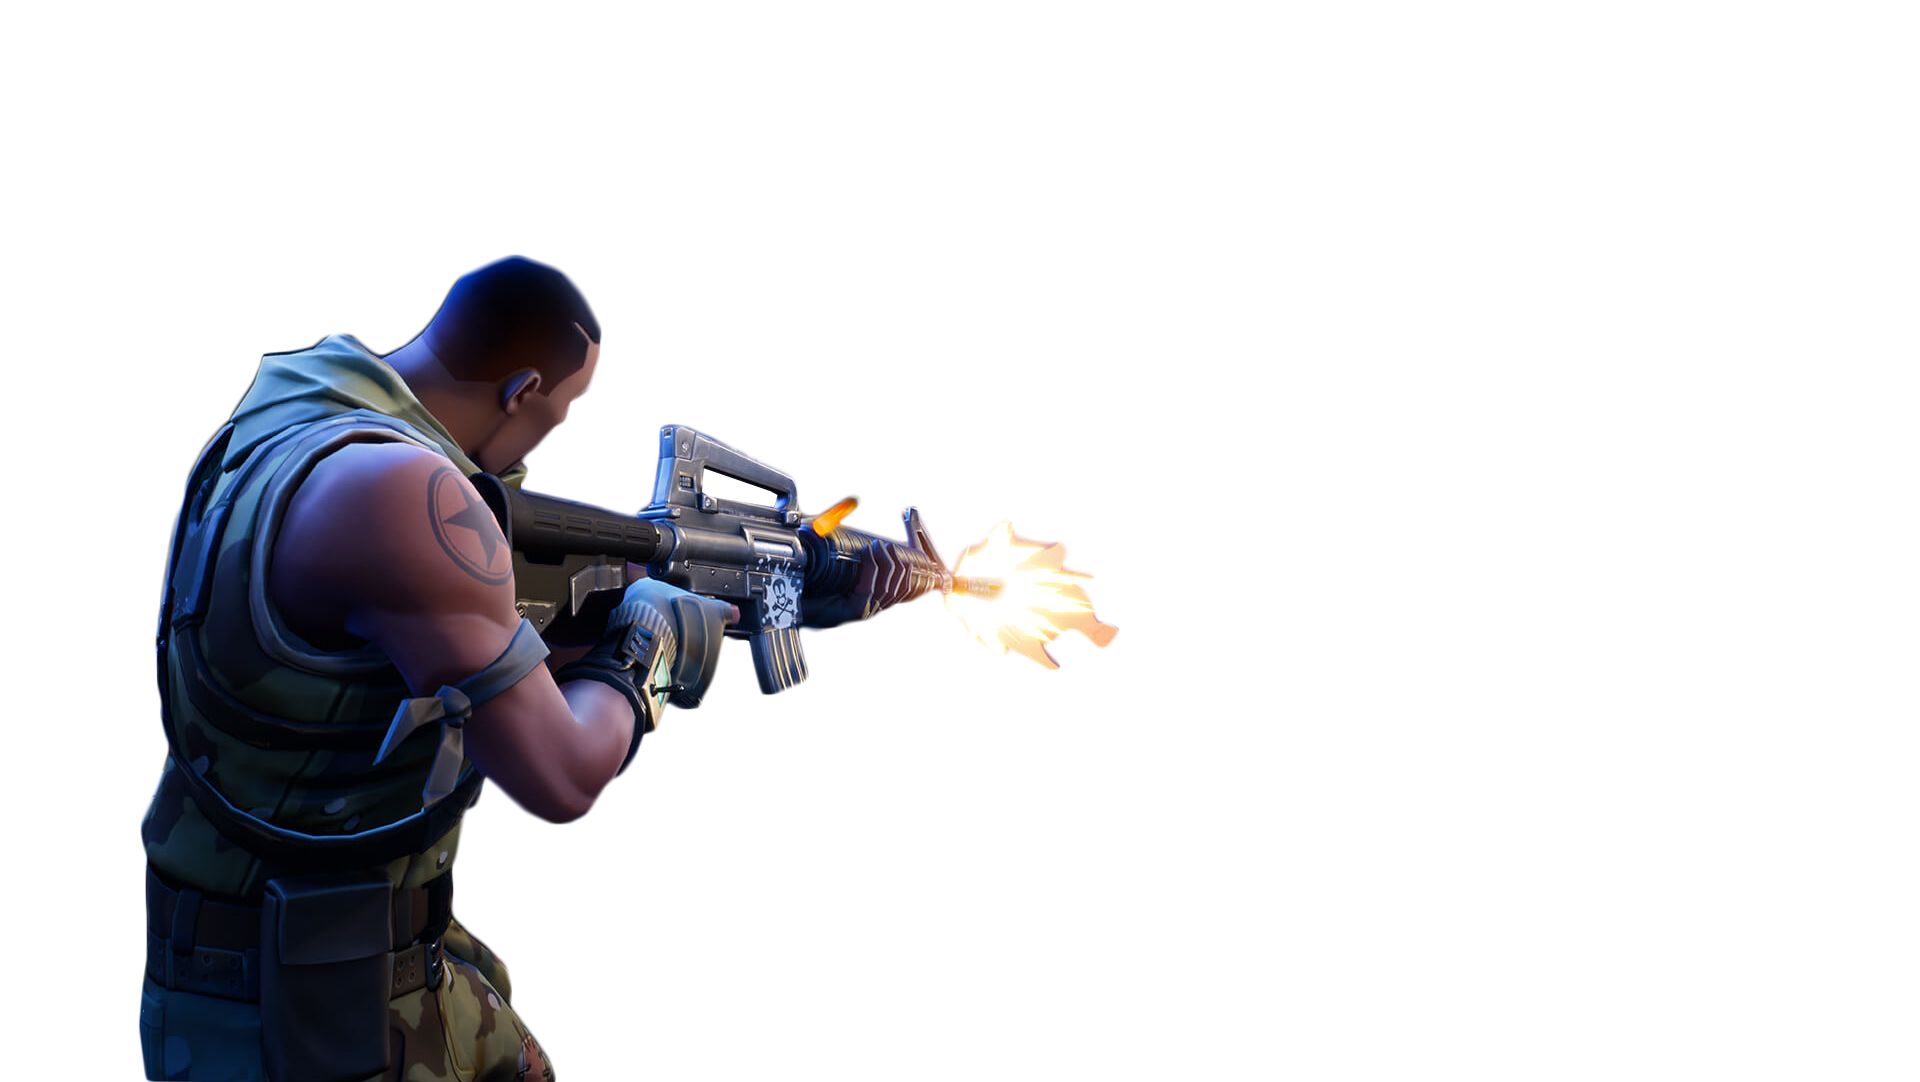 Person Shooting Fortnite Thumbnail Template PNG Image.